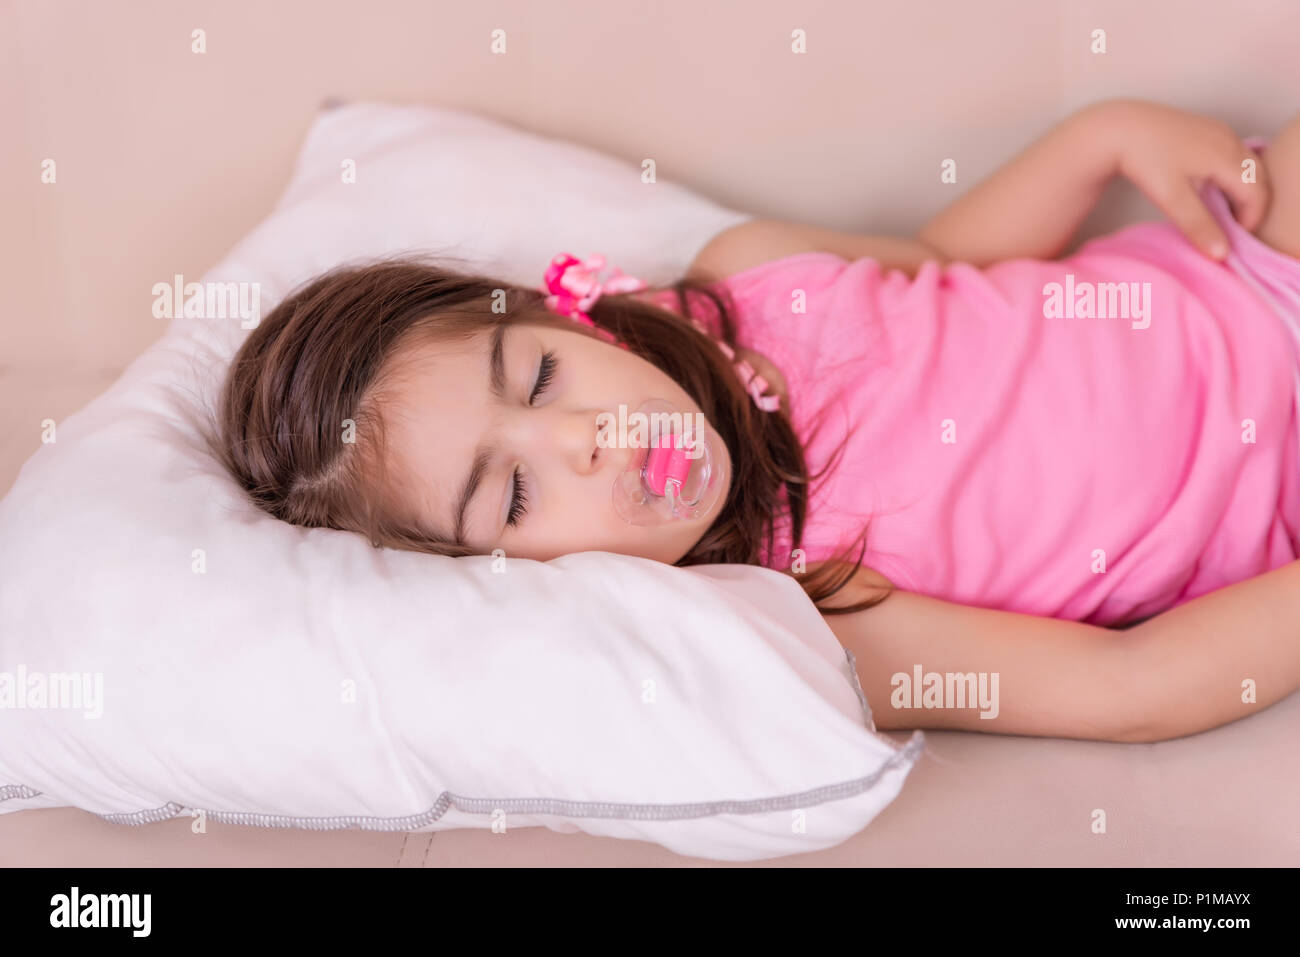 portrait of cute girl sleeps on a bed with pacifier in her mouth